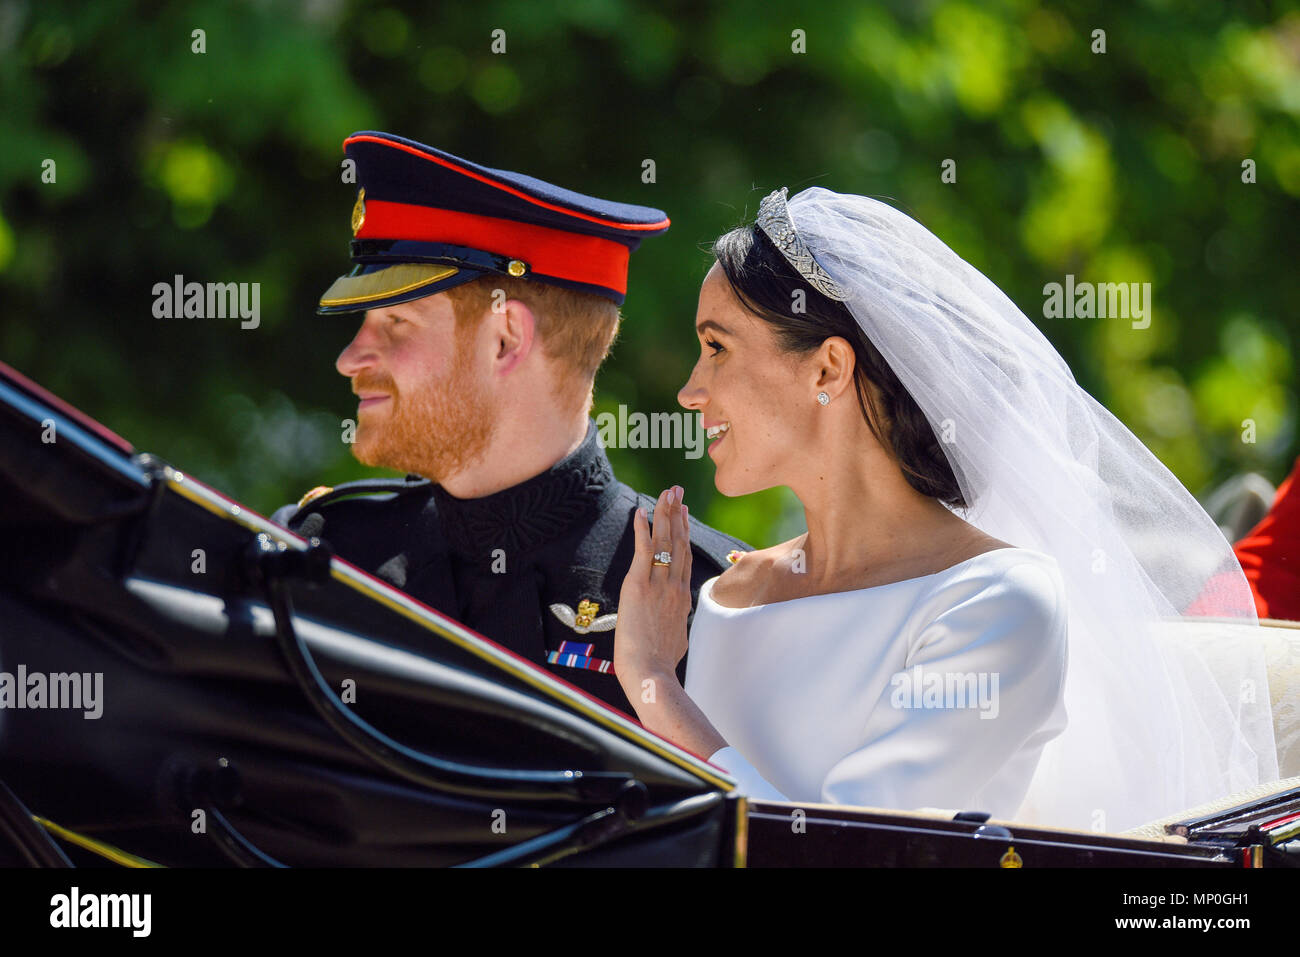 meghan-markle-and-prince-harry-carriage-procession-after-the-royal-wedding-at-windsor-on-the-long-walk-duke-and-duchess-of-sussex-wedding-dress-MP0GH1.jpg